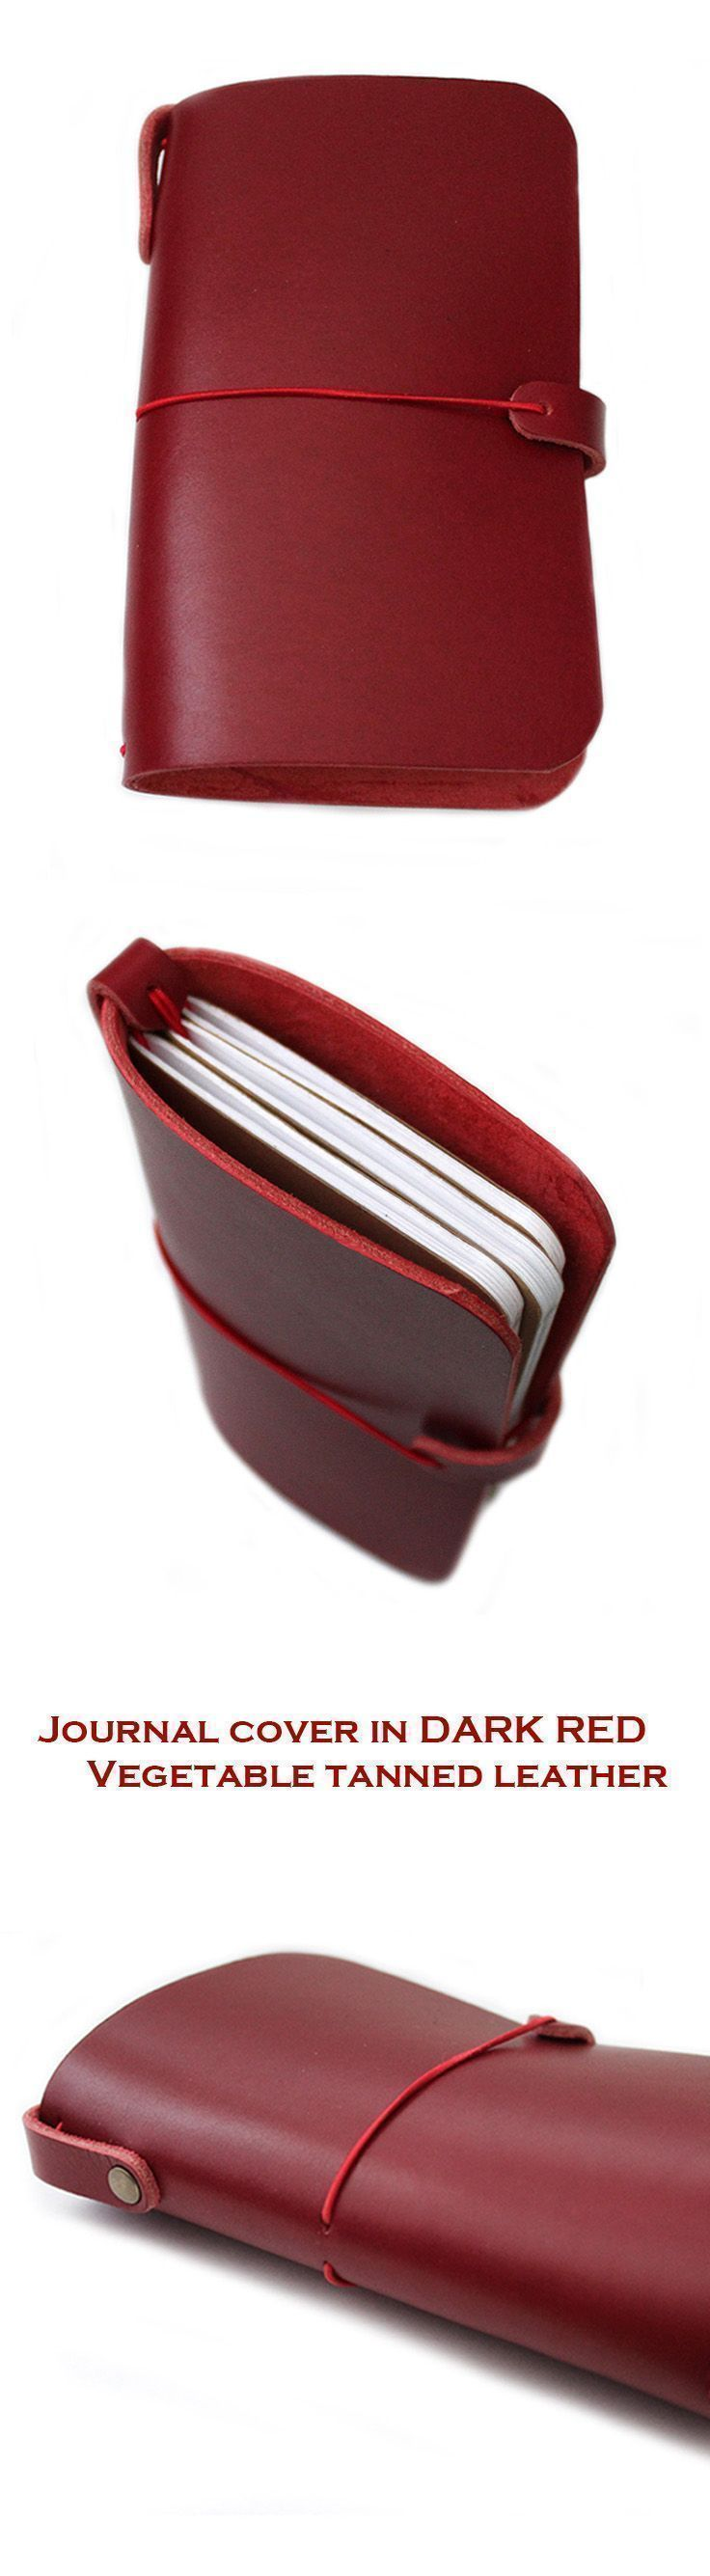 LEATHER JOURNAL COVER in Dark Red vegetable tanned genuine Italian leather for Midori travelers, Midori passport, Field notes, Moleskine Cahiers A5 journal, A6 size notebooks and/or Leuchtrum 1917 or a passport. (scheduled via http://www.tailwindapp.com?u